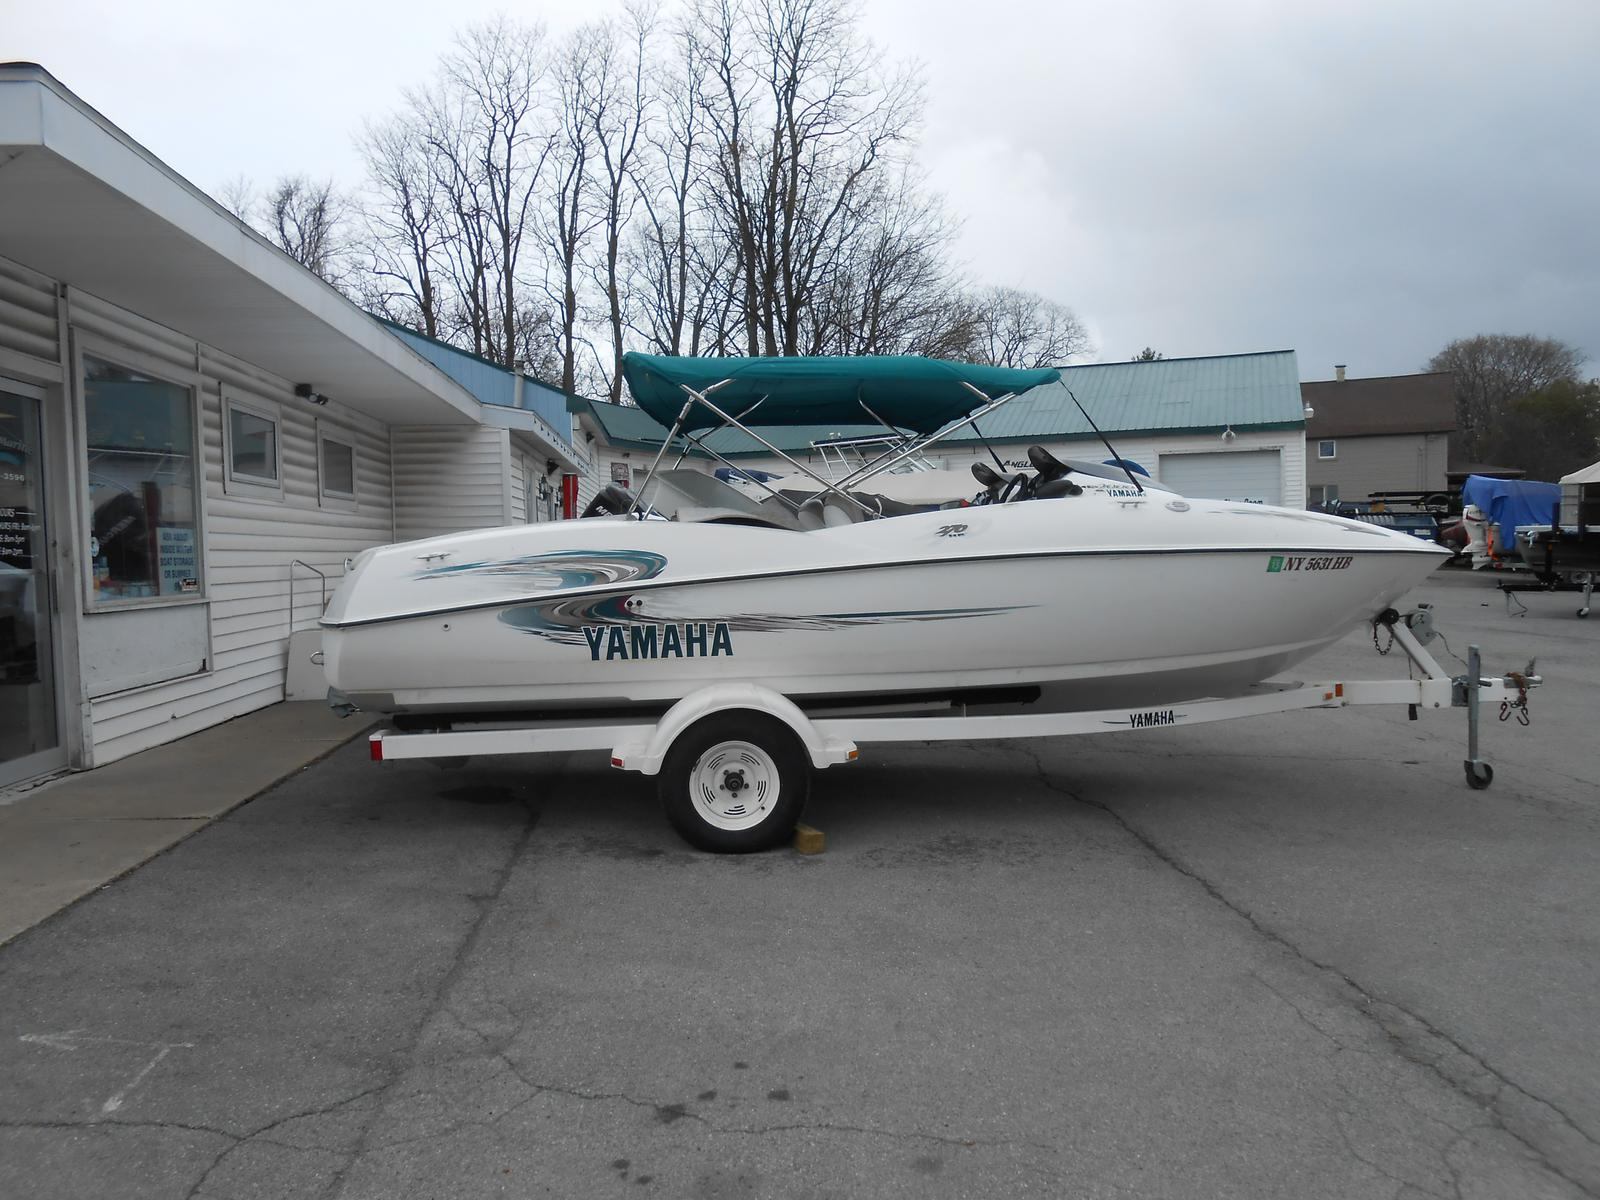 2000 yamaha ls2000 19 foot 2000 yamaha motor boat in for Jet cars rotterdam opgelicht